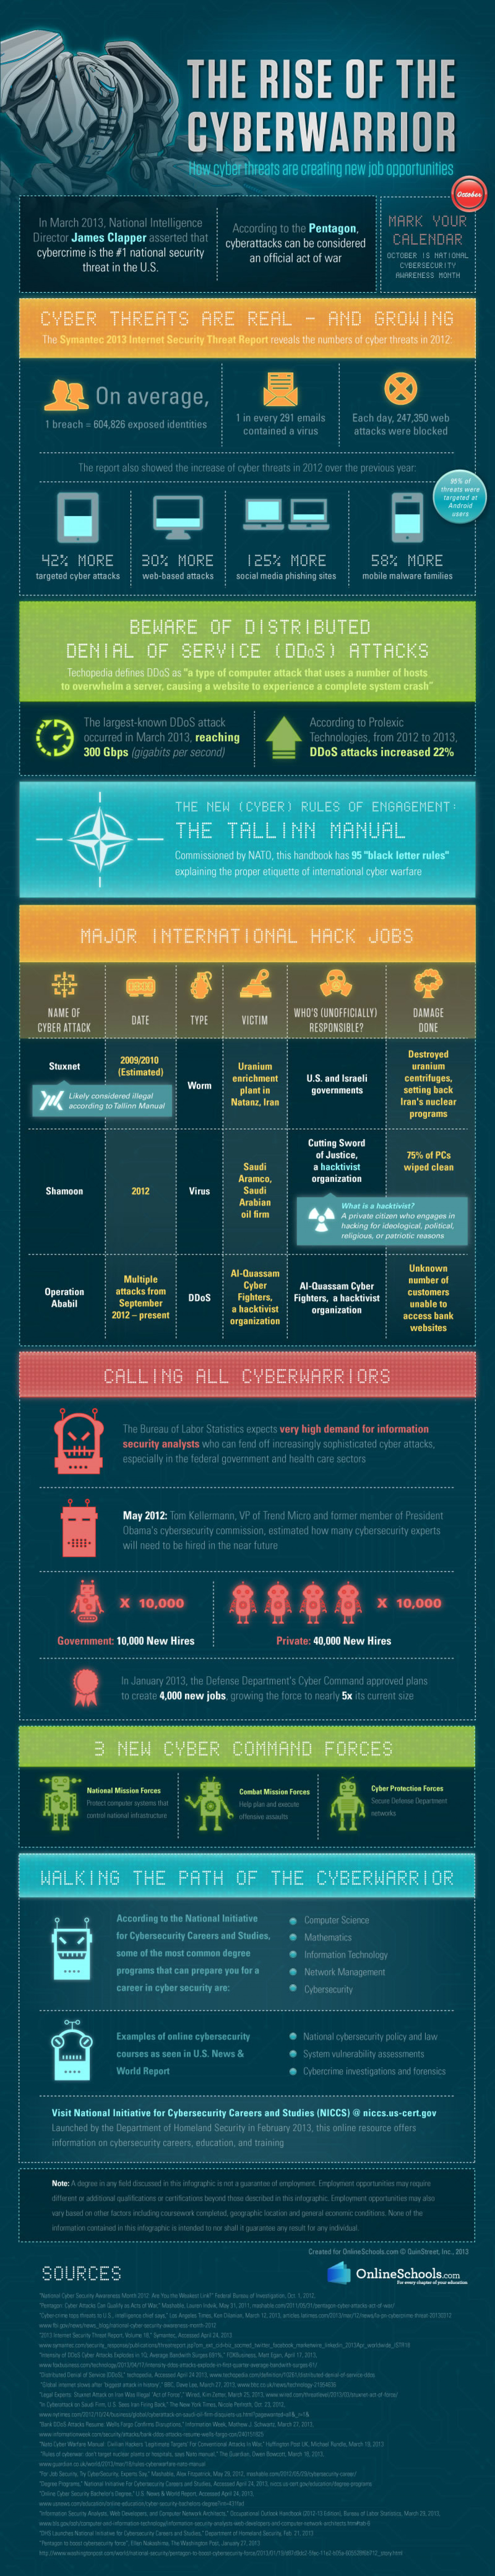 The Rise of the Cyberwarrior Infographic